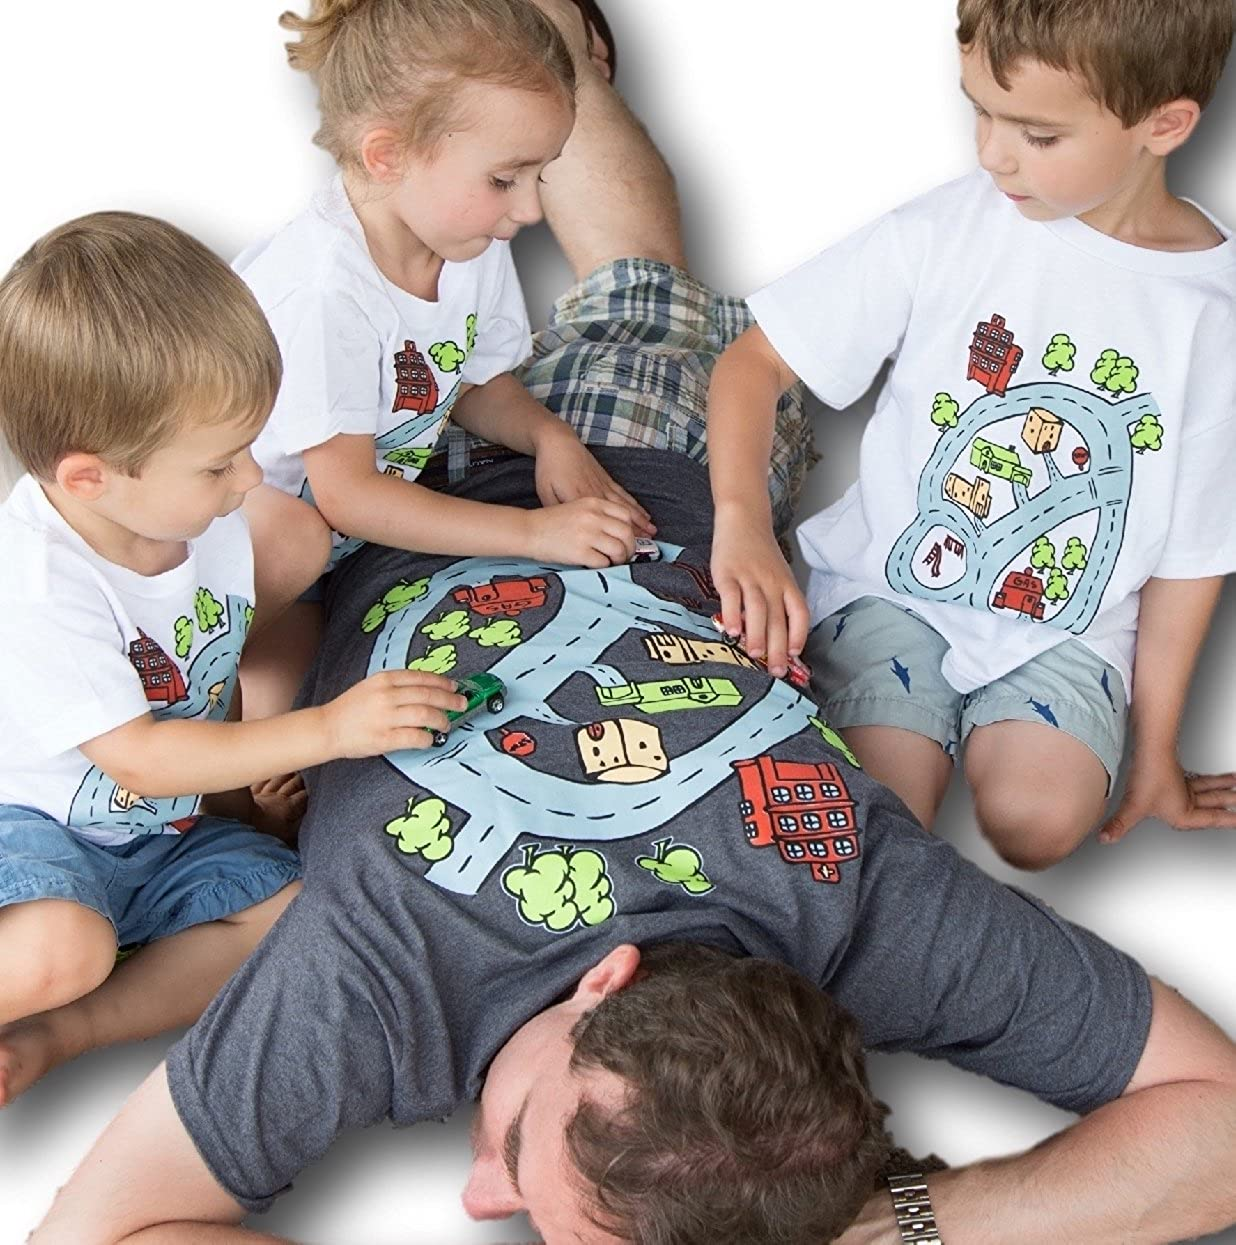 e3a9e51bc Amazon.com: Swanky Turtle BackTRACK Race Track Shirt Town and Road on Back  of Play Mat T-Shirt: Clothing